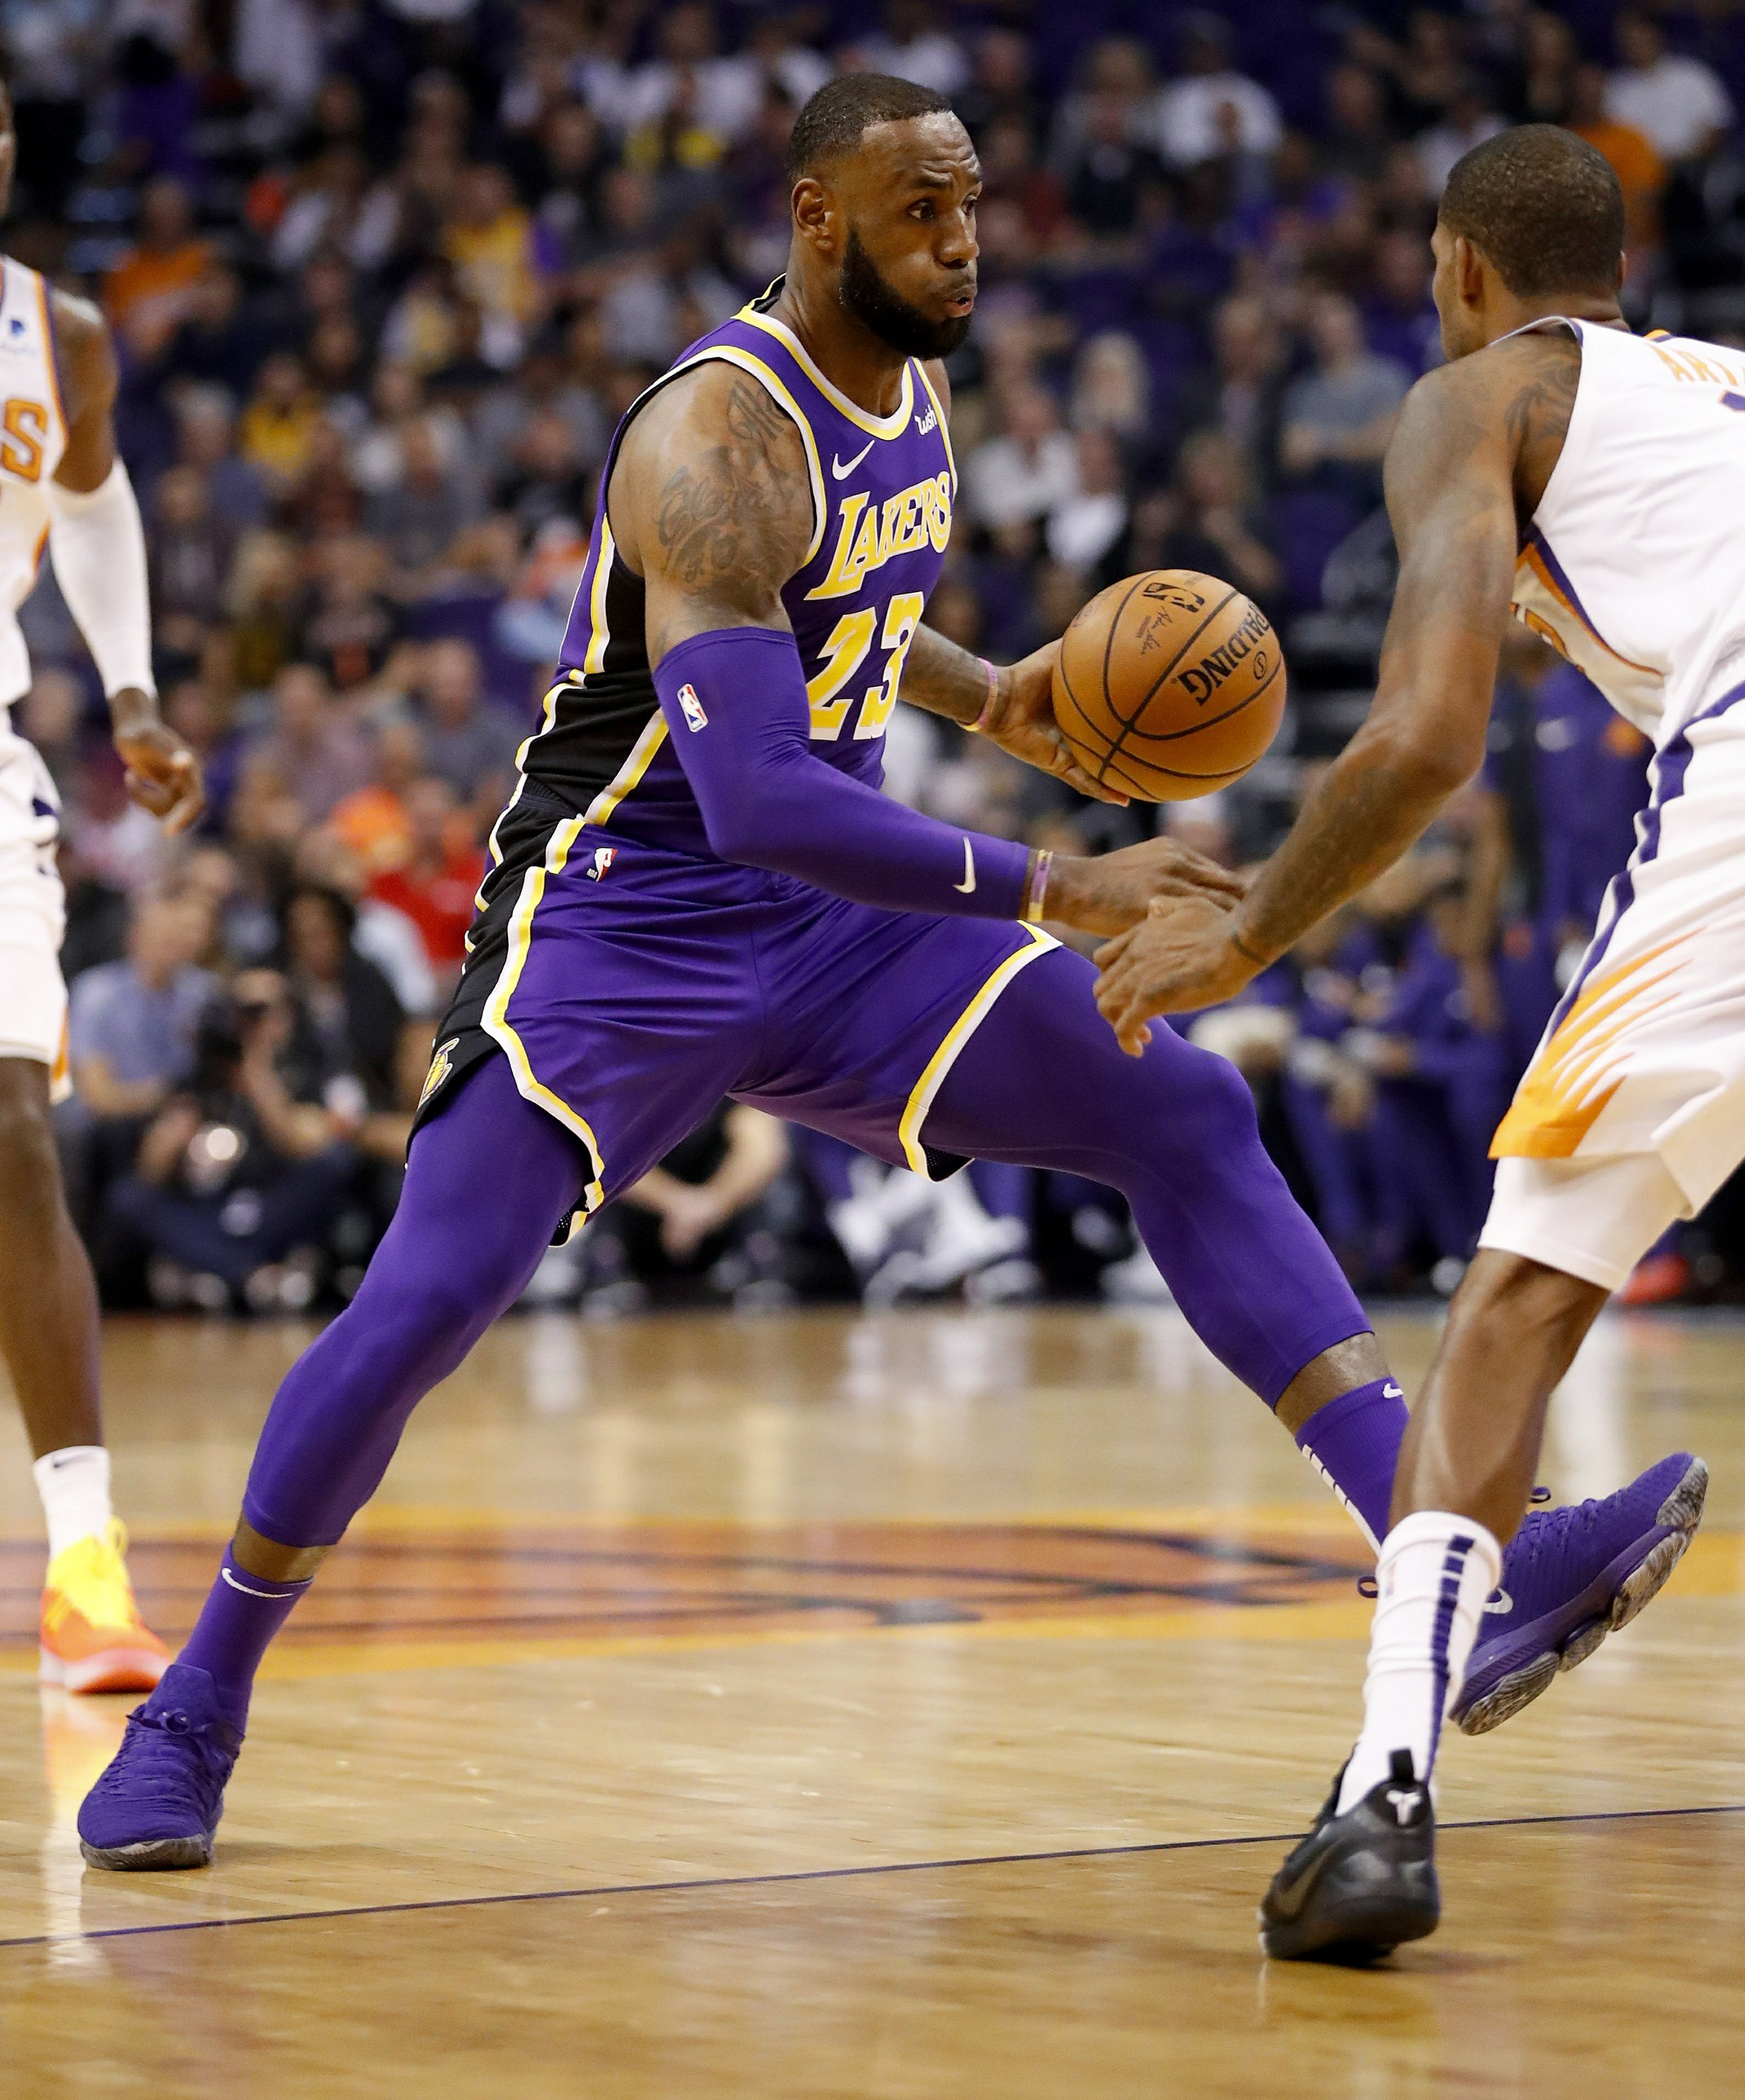 318f0c0bf38 LeBron James gets 1st win as a Laker in romp over Suns